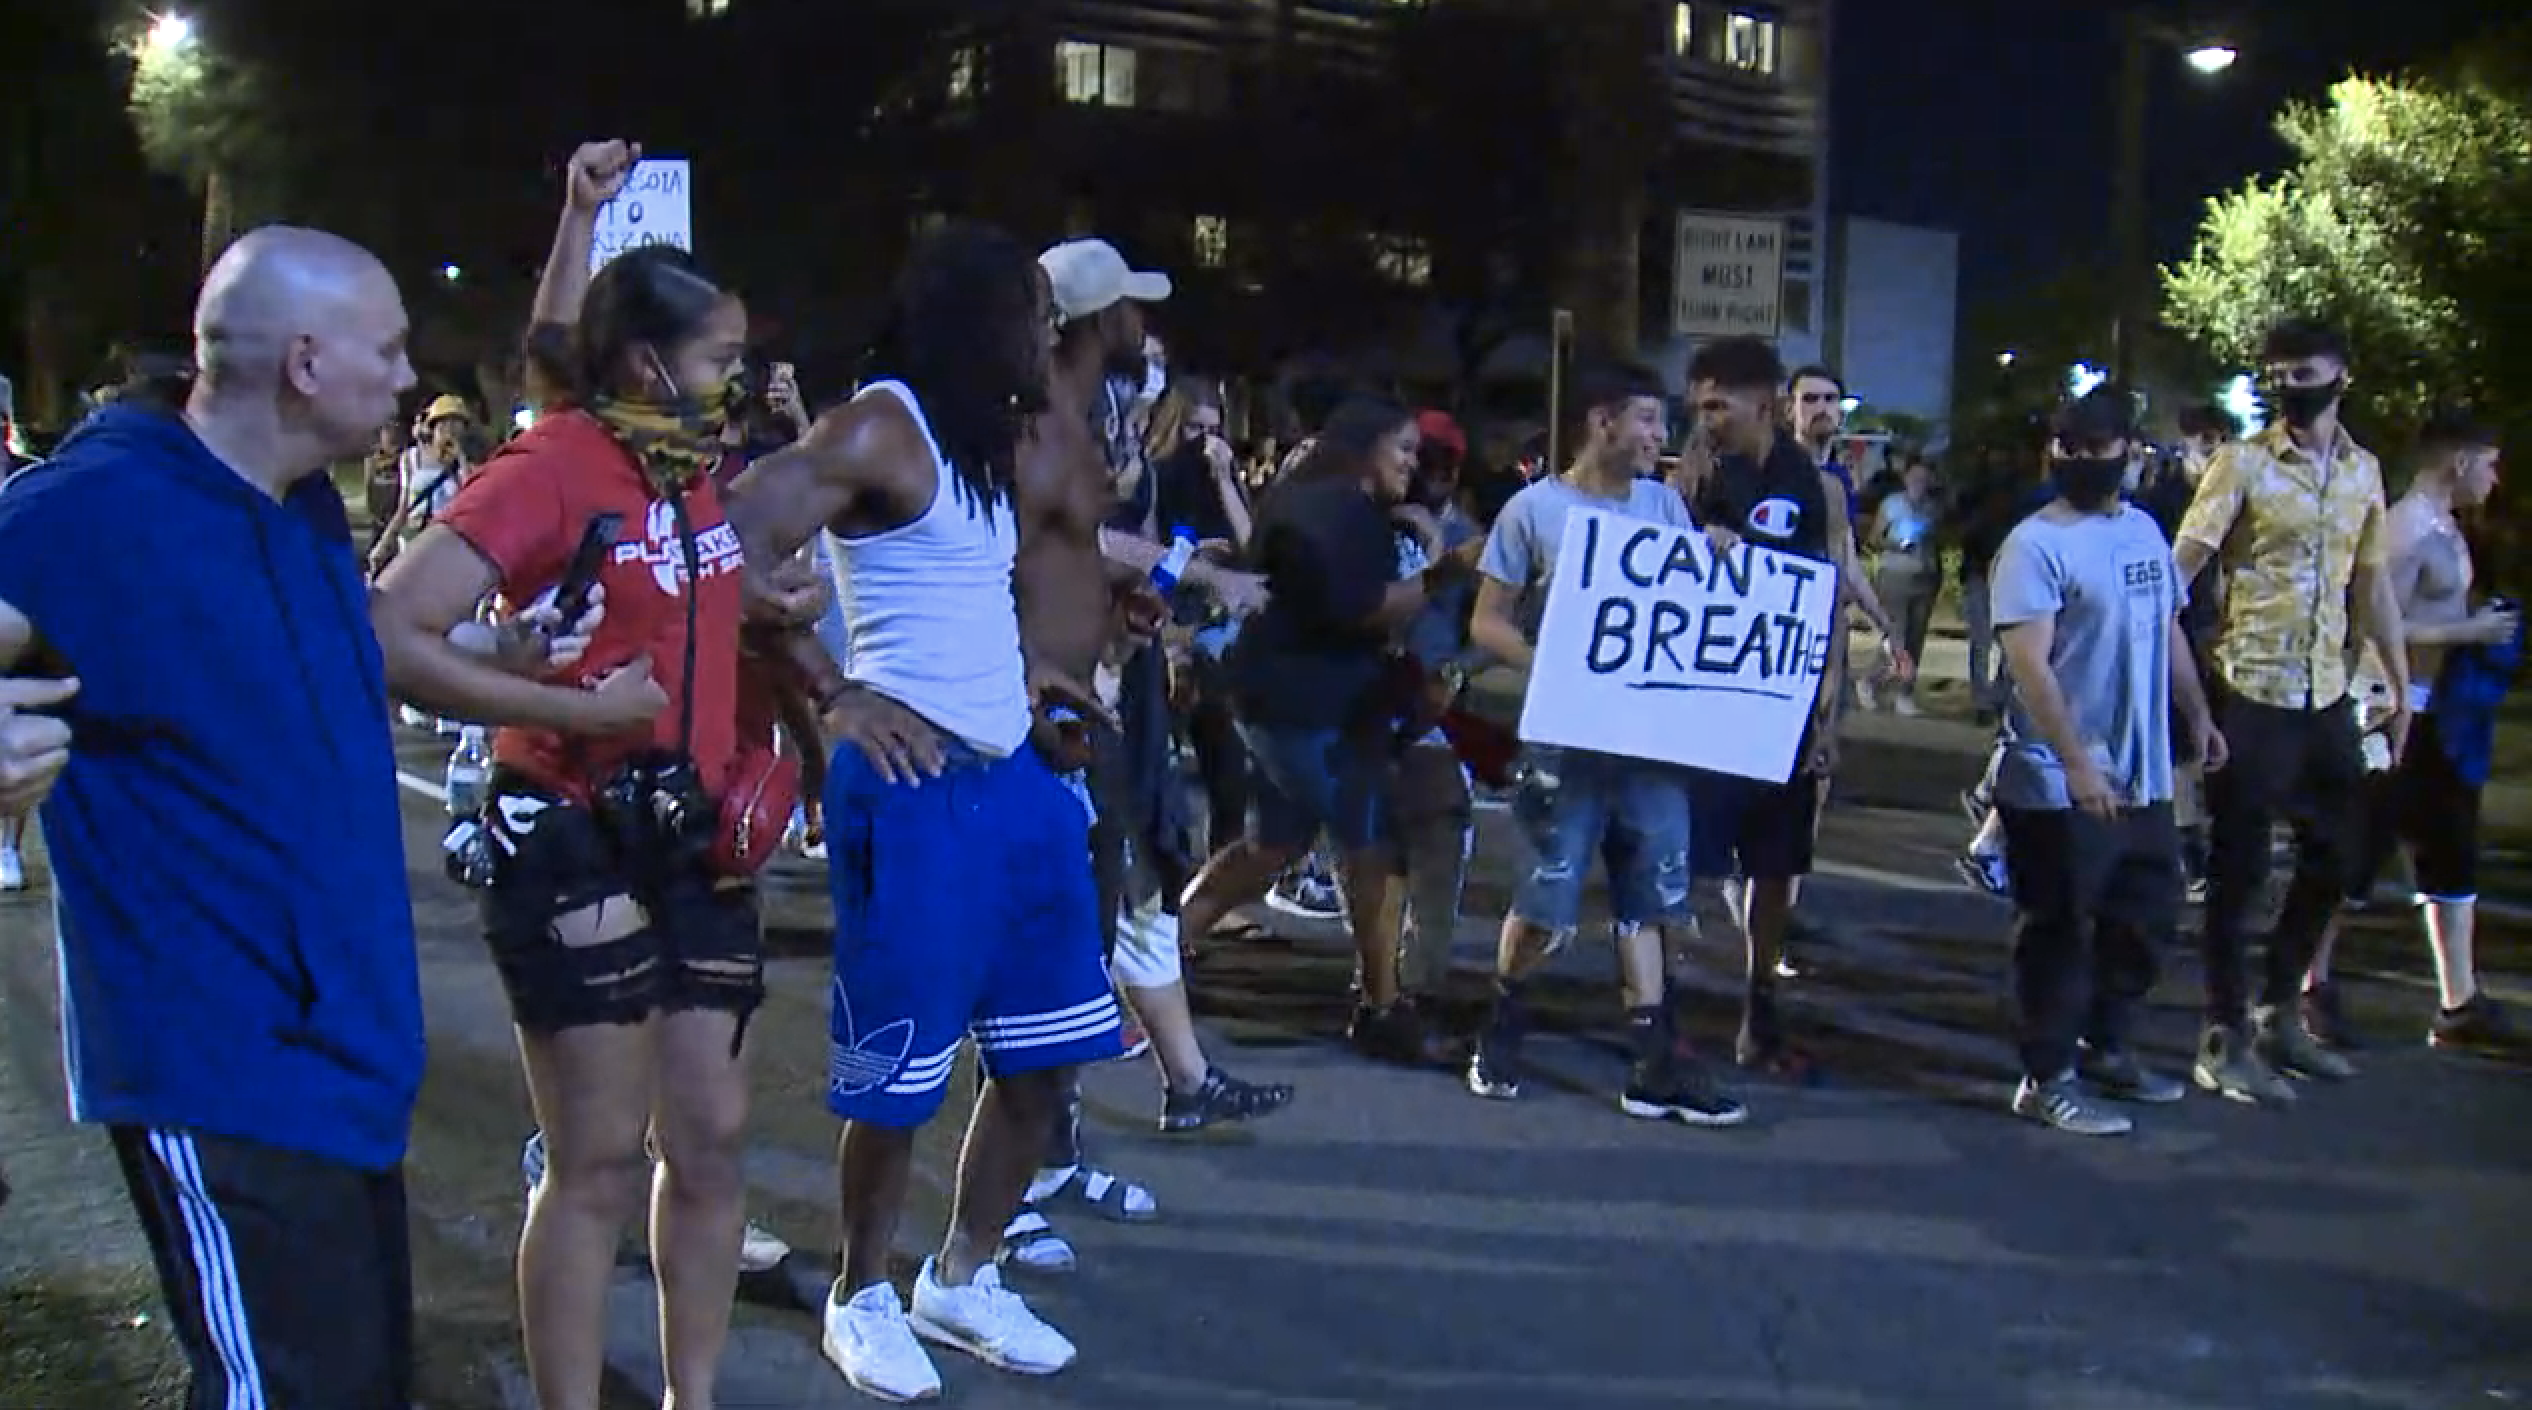 PHOTOS: Protesters rally in downtown Phoenix amid George Floyd's death